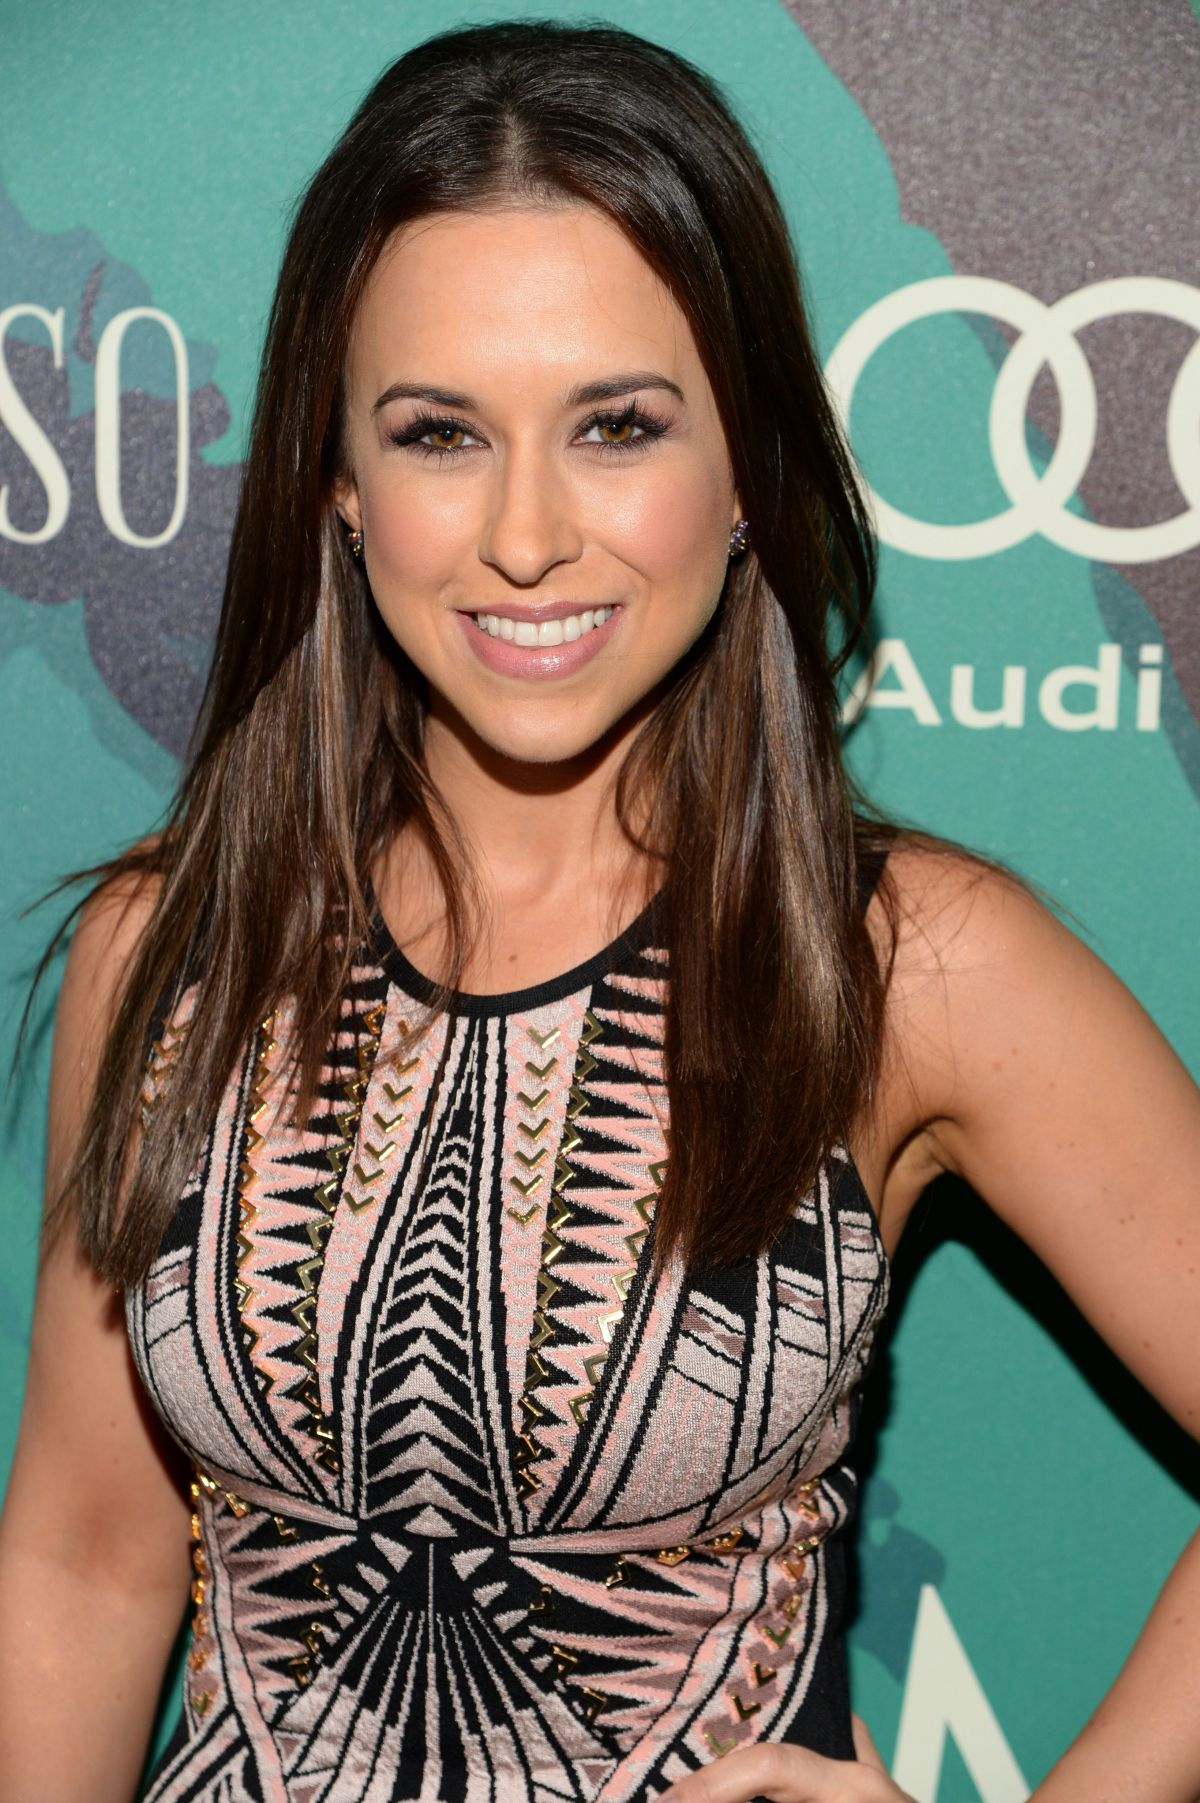 lacey chabert movie listlacey chabert instagram, lacey chabert lost in space, lacey chabert imdb, lacey chabert 1998, lacey chabert wikipedia, lacey chabert family guy, lacey chabert meg griffin, lacey chabert brennan elliott, lacey chabert 2016, lacey chabert filmography, lacey chabert a royal christmas, lacey chabert photoshoot, lacey chabert, lacey chabert husband, lacey chabert hallmark movies, lacey chabert bikini, lacey chabert wiki, lacey chabert 2015, party of five lacey chabert, lacey chabert movie list